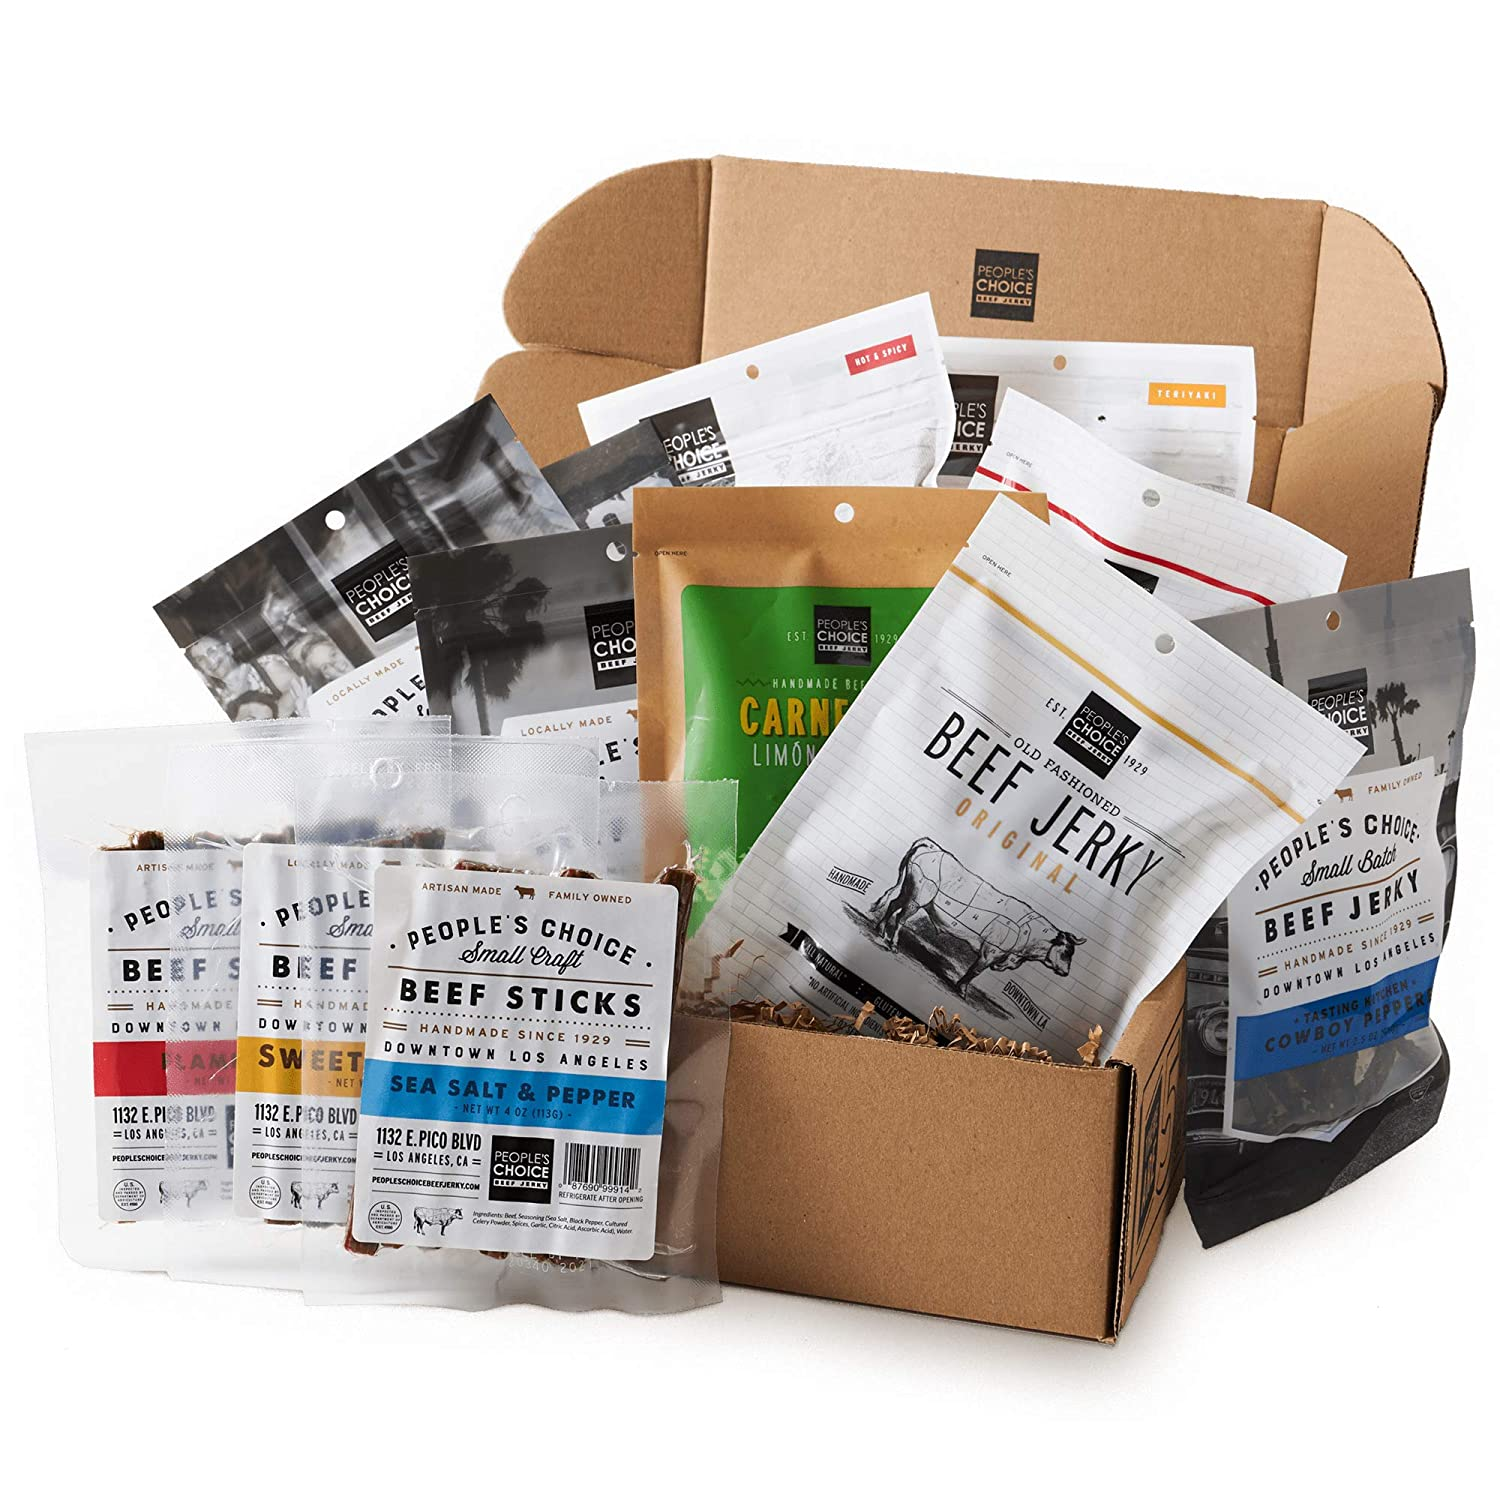 People's Choice Beef Jerky - Everything Inexpensive ! Super beauty product restock quality top! Box of One Gif